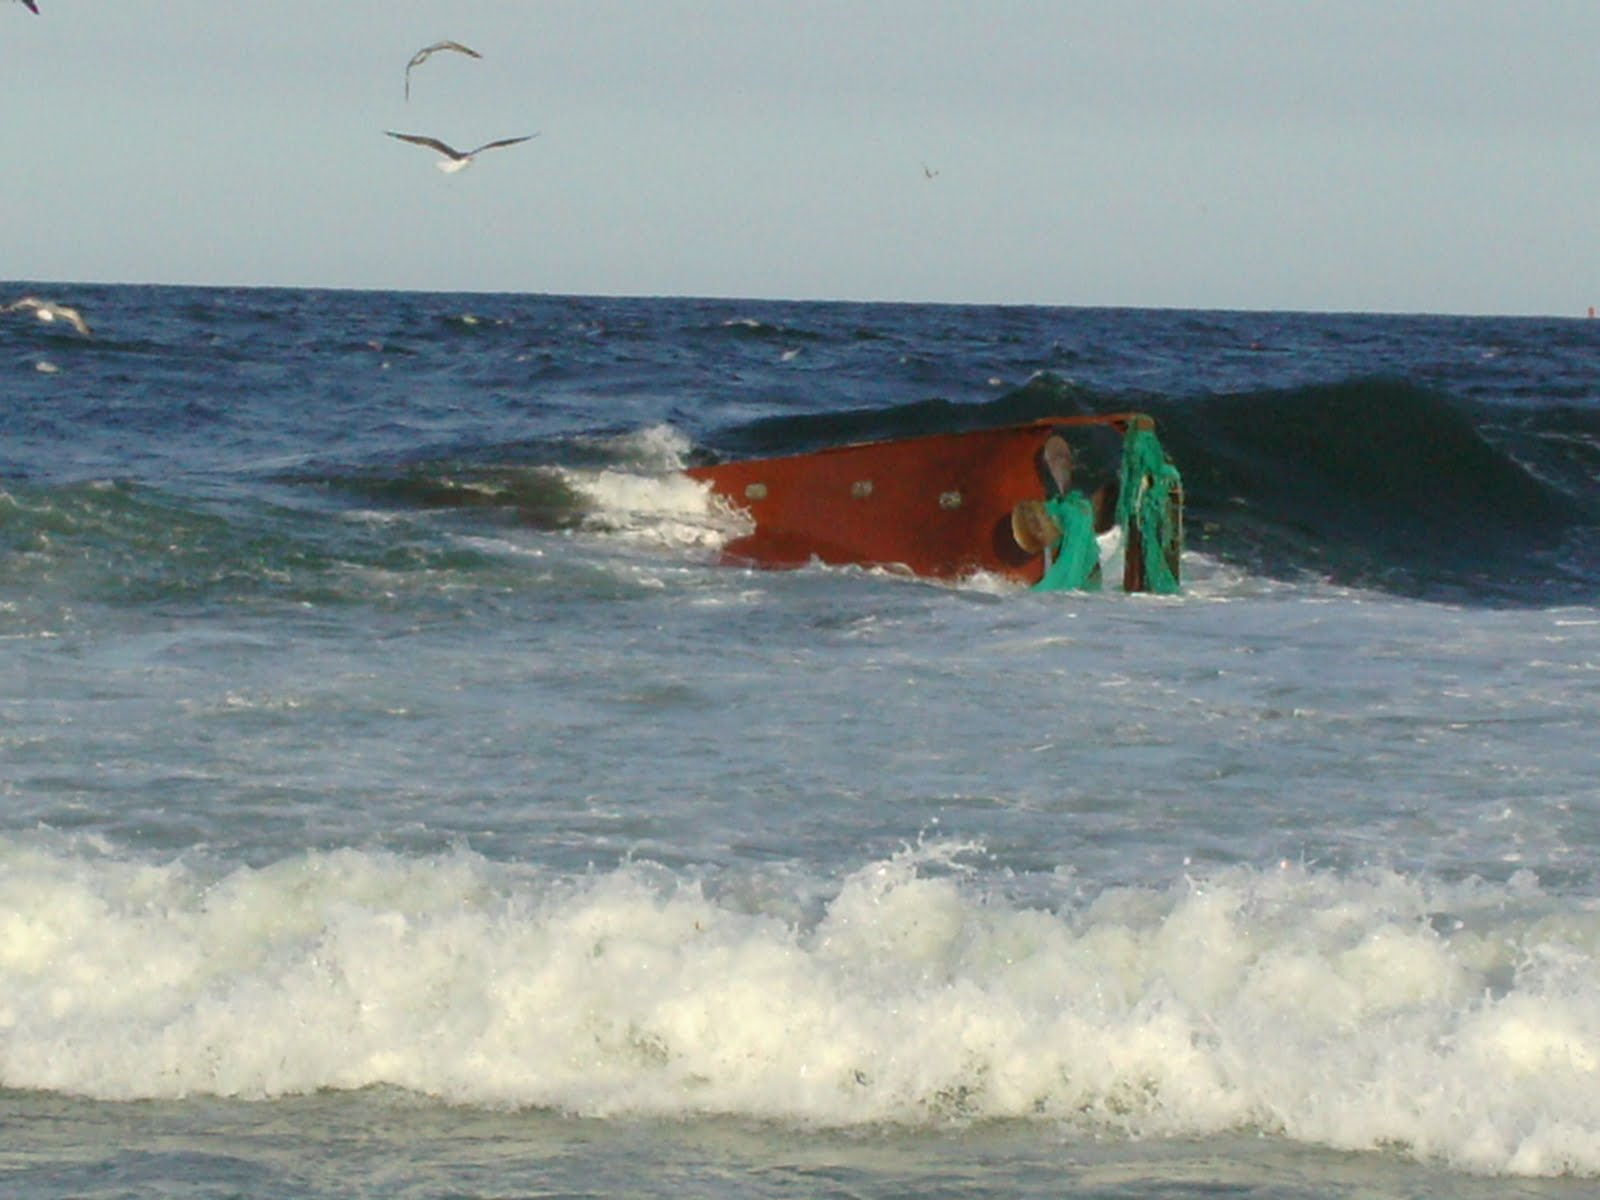 Point pleasant beach rescue dive team fishing boat wreck for Manasquan inlet fishing